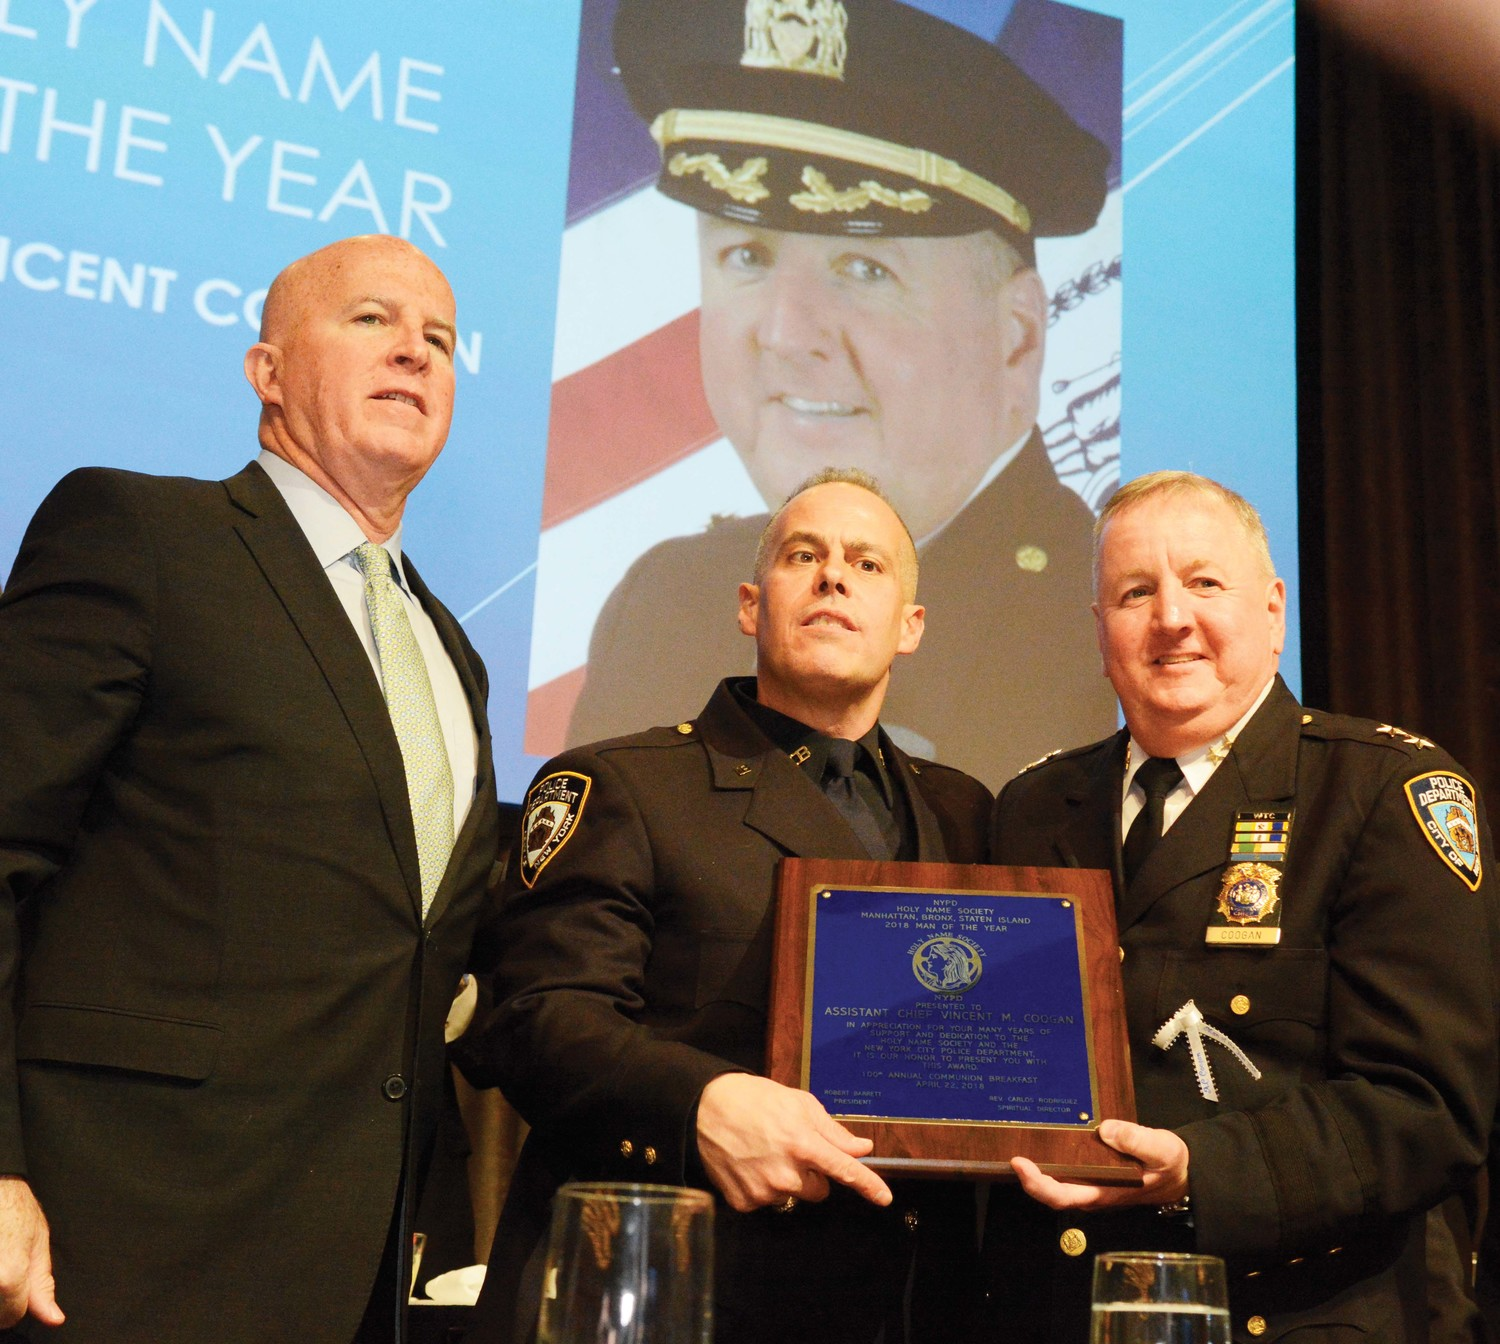 Assistant Chief Vincent Coogan, executive officer of the NYPD Transit Bureau, right, accepts the 2018 Man of the Year Award for the Holy Name Society of Manhattan, Bronx and Staten Island at the organization's centennial Communion Breakfast April 22 at the New York Hilton Midtown in Manhattan. From left, NYPD Police Commissioner James O'Neill and NYPD Det. Robert Barrett, president of the Holy Name Society.